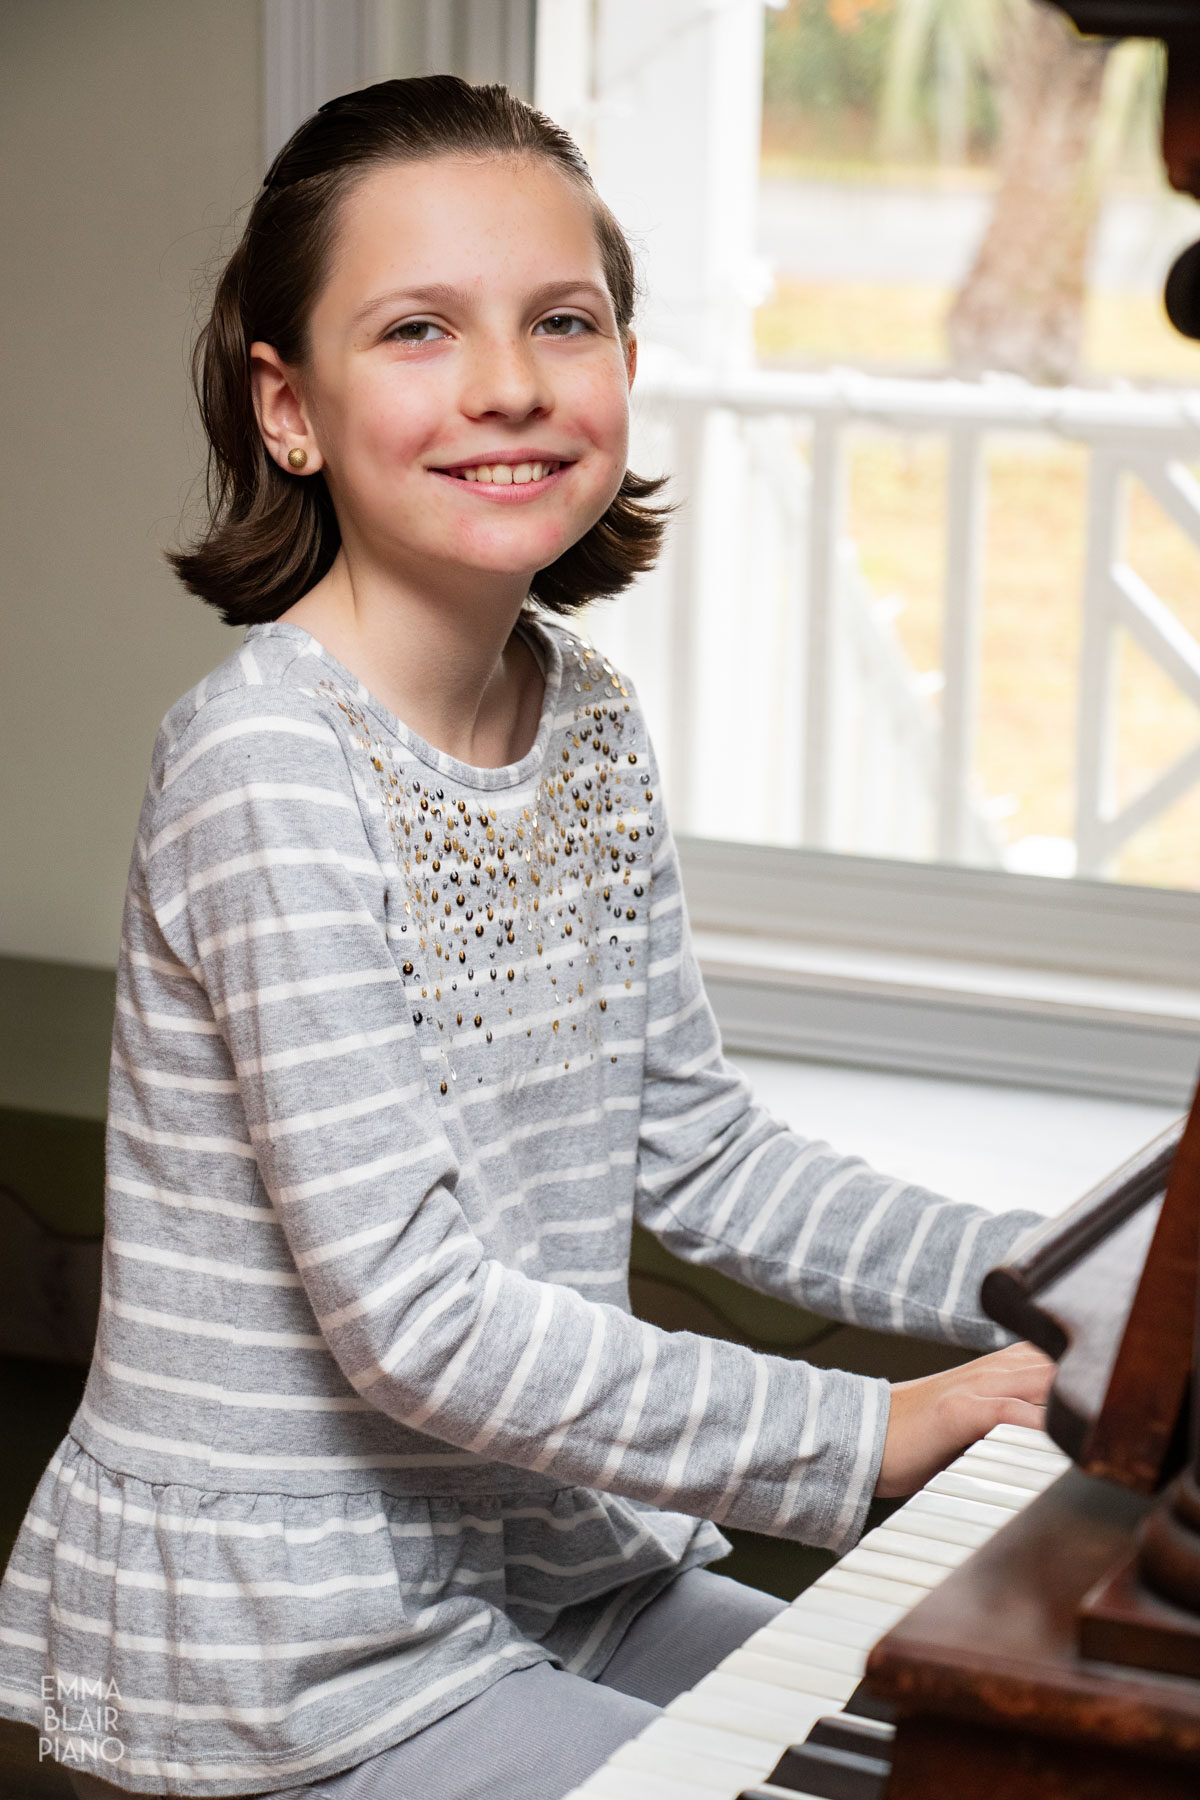 young girl smiling at the piano